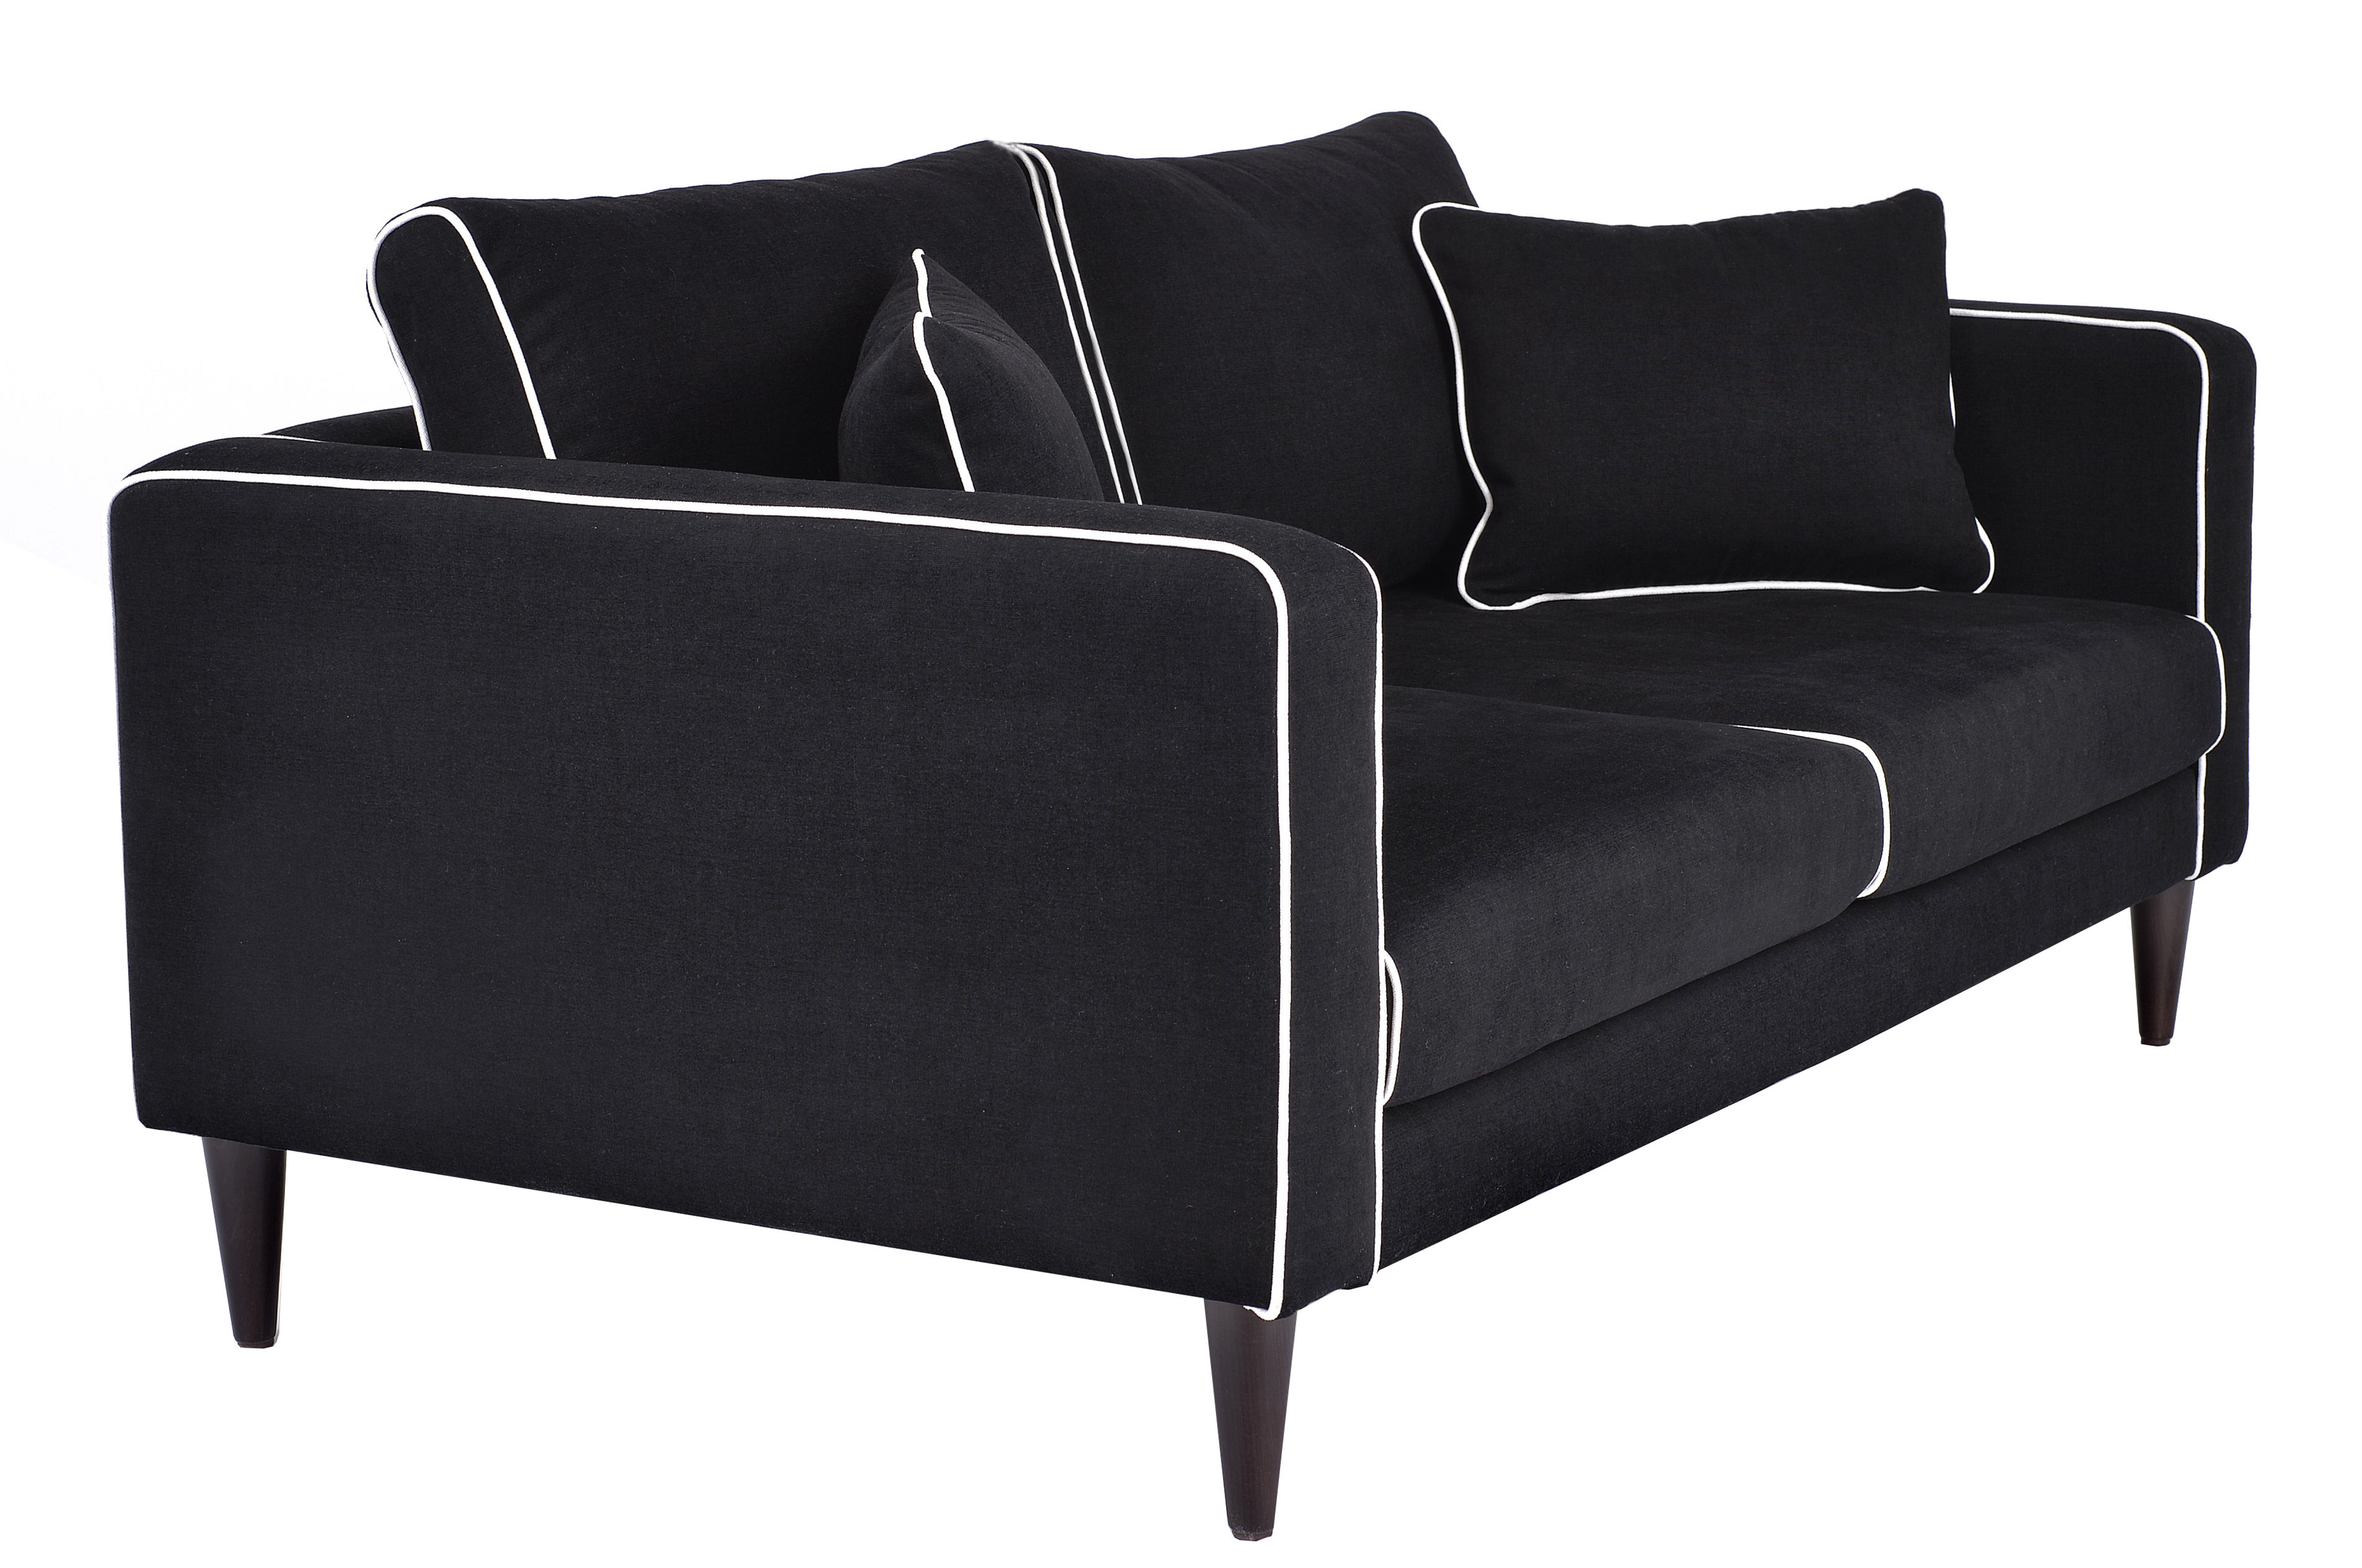 noa 2 sitzer l 160 cm maison sarah lavoine sofa. Black Bedroom Furniture Sets. Home Design Ideas